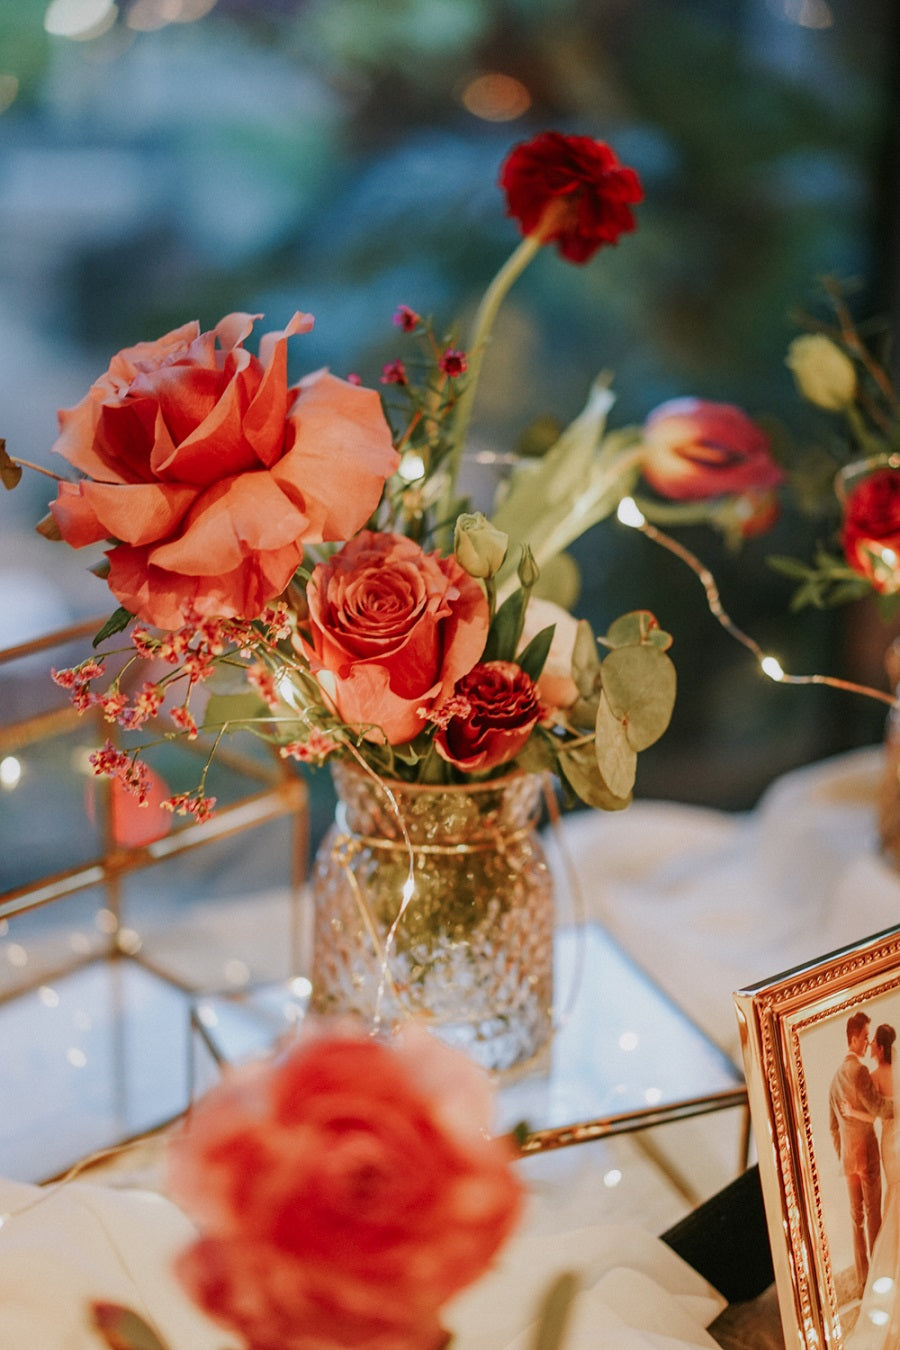 Photo table idea in Singapore for classy wedding and elegance